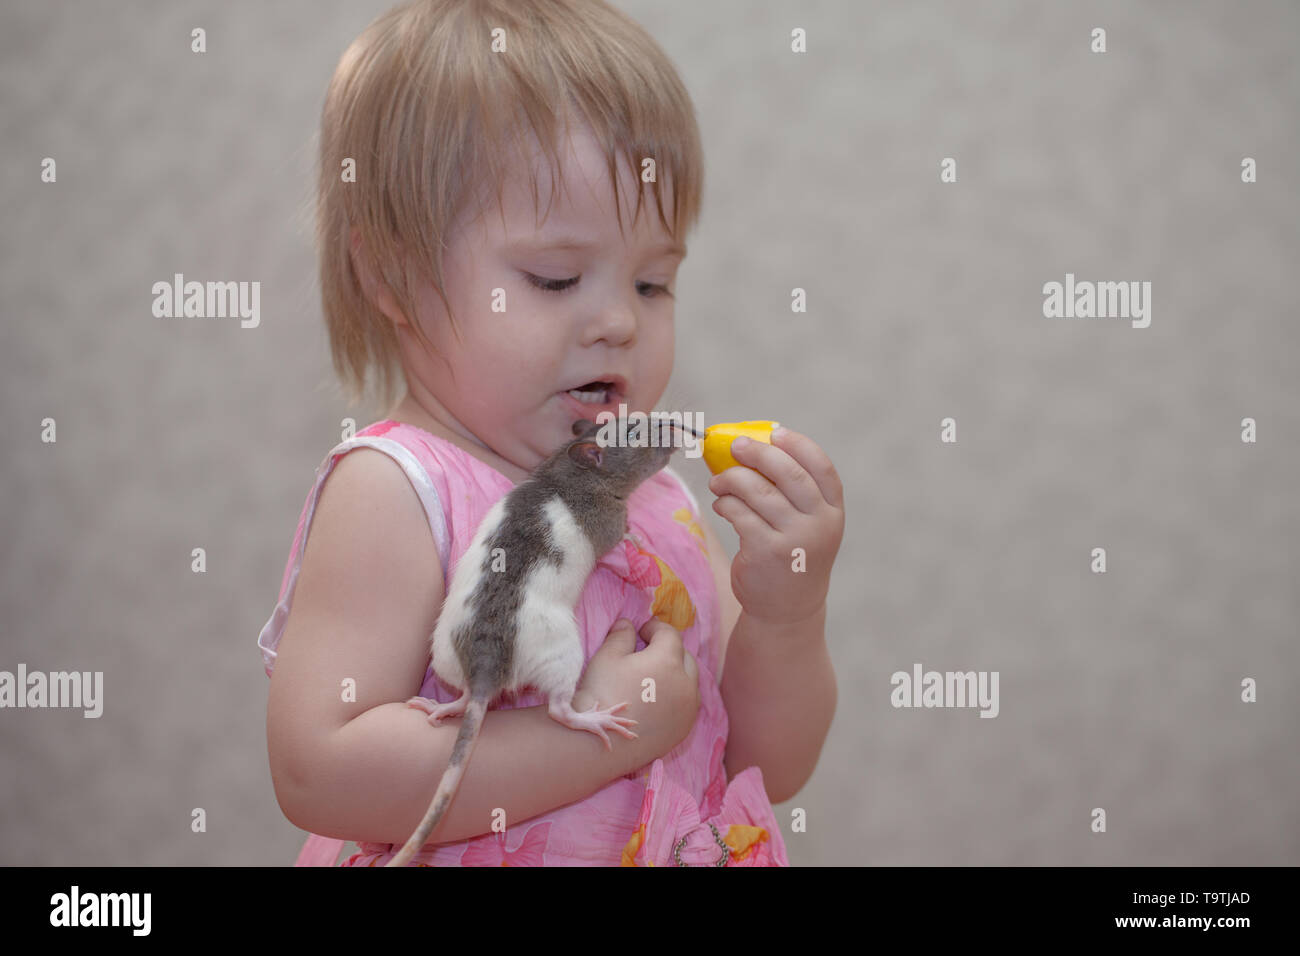 Mouse Girl Stock Photos & Mouse Girl Stock Images - Alamy